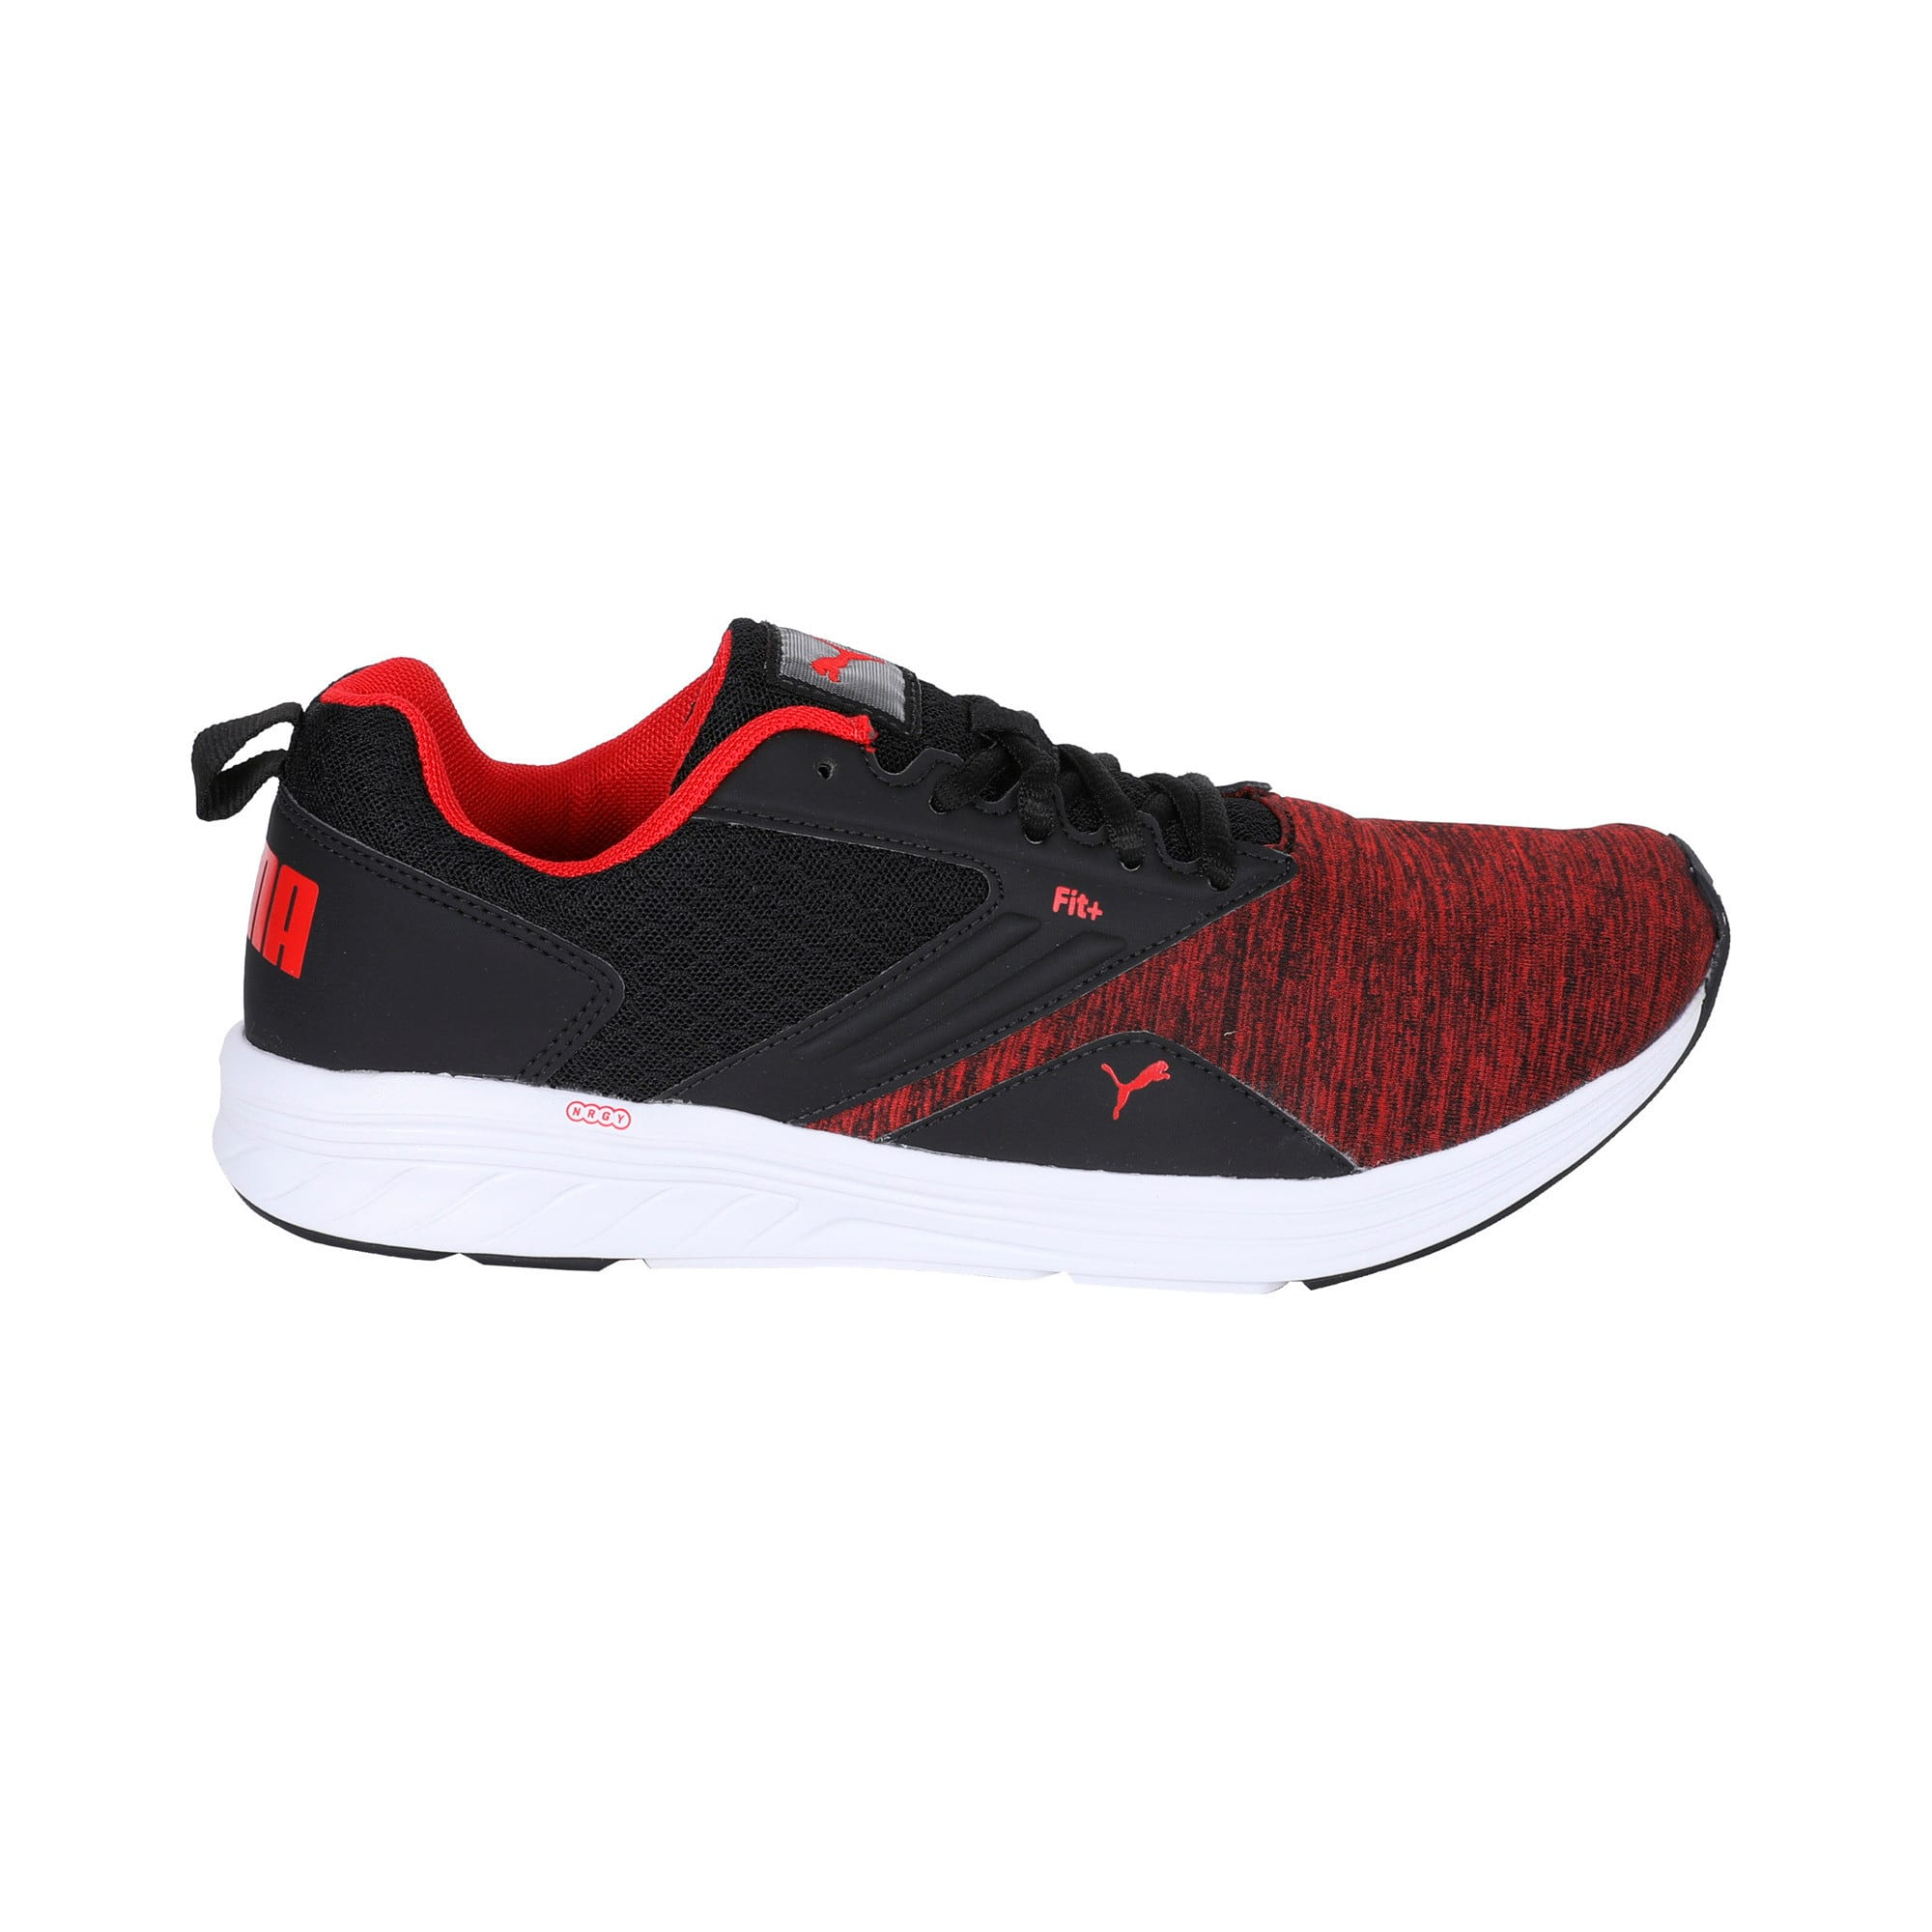 Thumbnail 5 of Comet IPD, Puma Black-High Risk Red, medium-IND